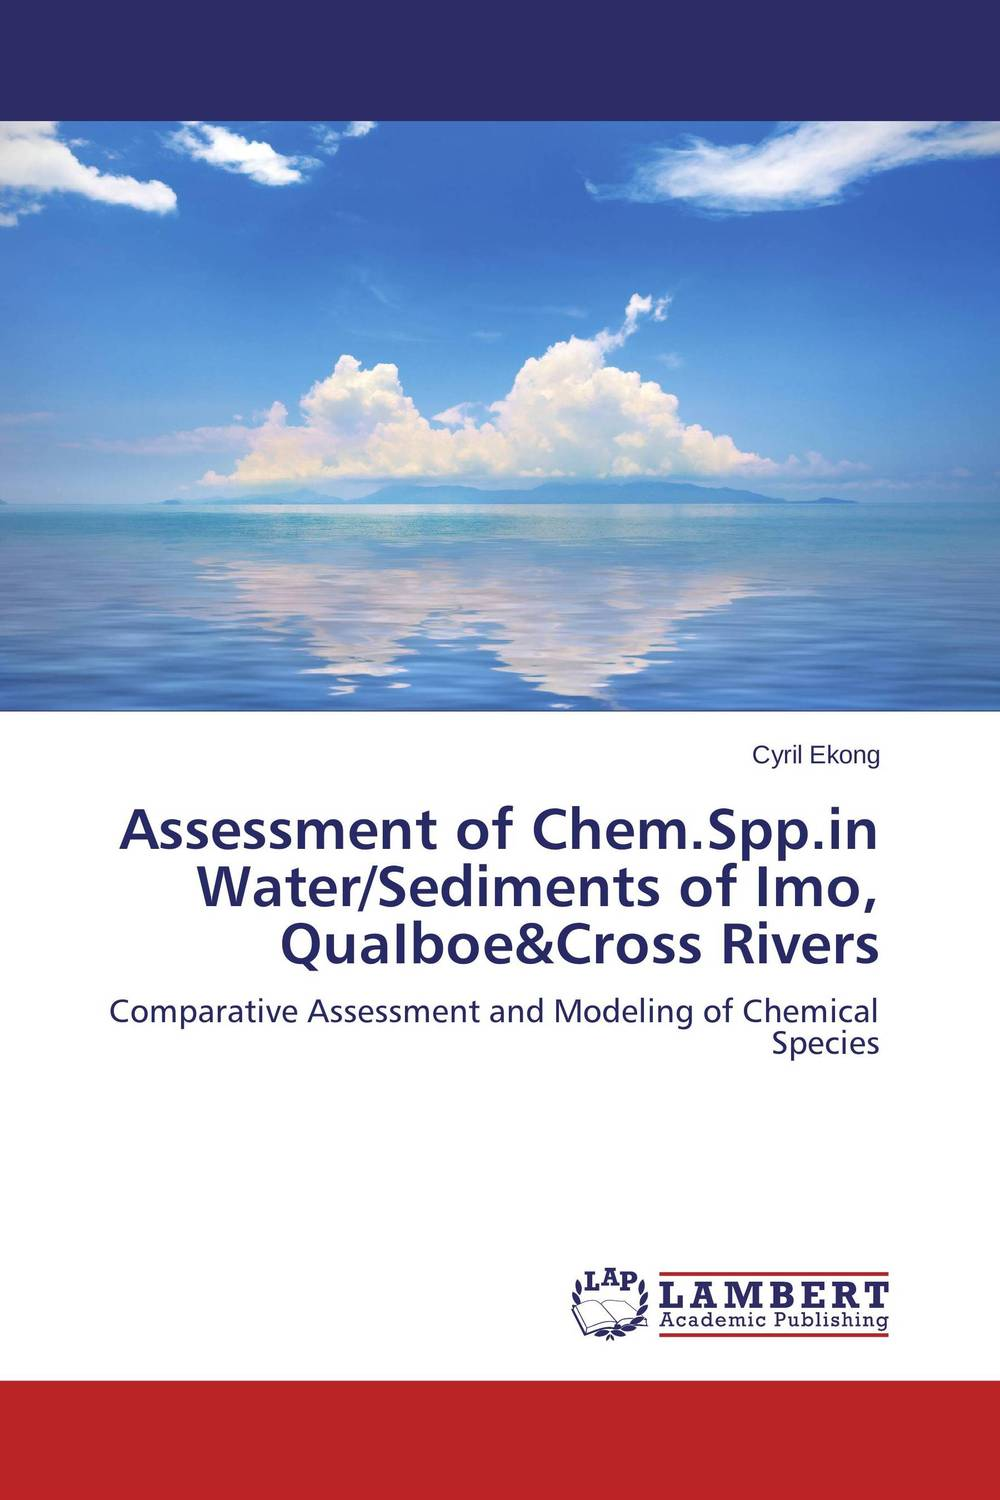 Assessment of Chem.Spp.in Water/Sediments of Imo, QuaIboe&Cross Rivers fda 4813 replaceable core filter driers are designed to be used in both the liquid and suction lines of water chiller systems